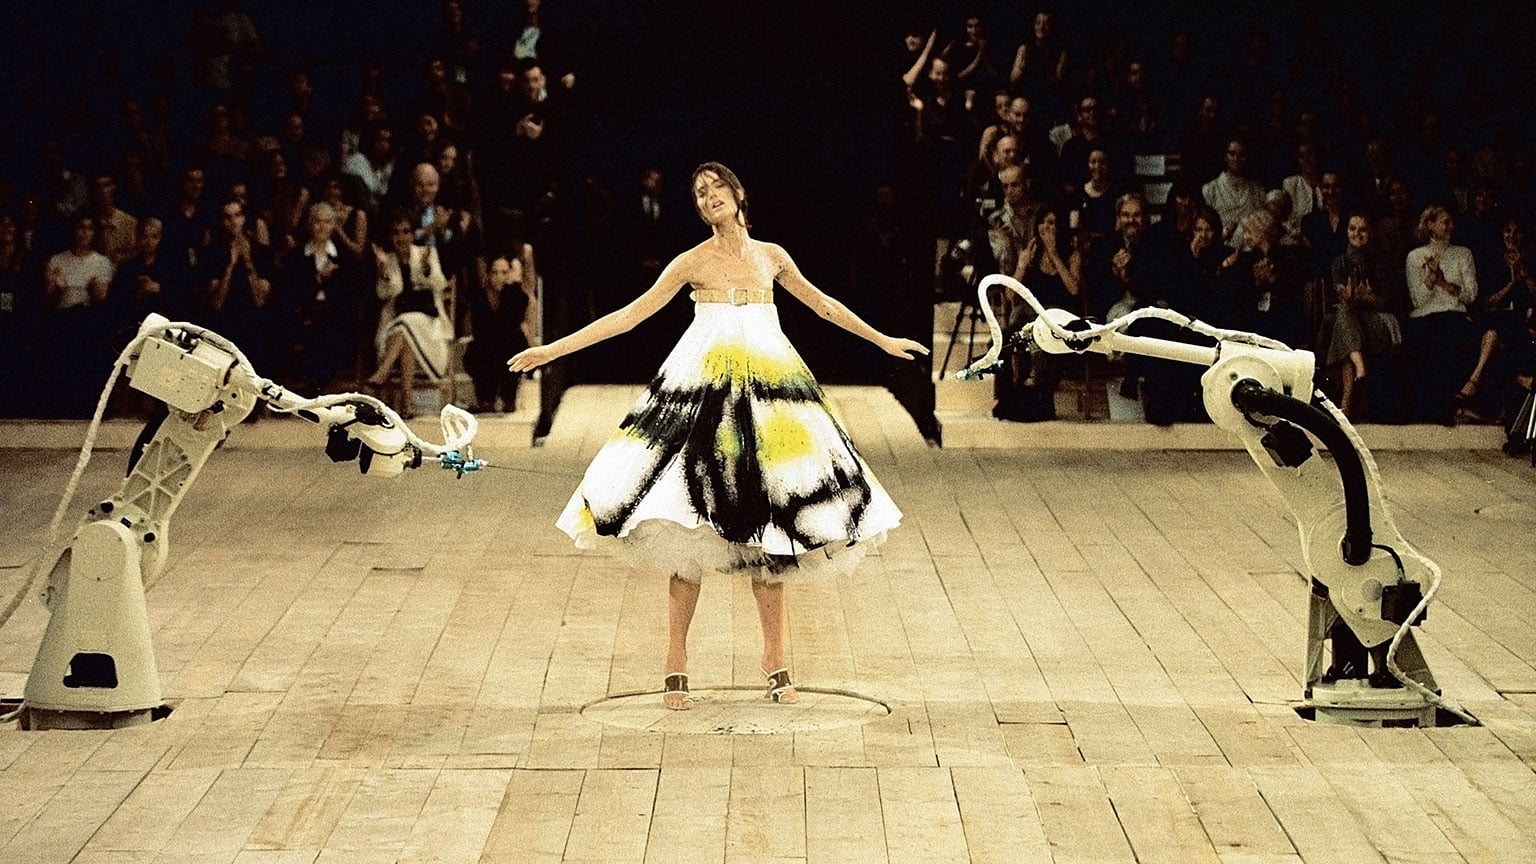 Finale of No 13, Spring/ Summer 1999, featuring model Shalom Harlow - Image: Catwalking